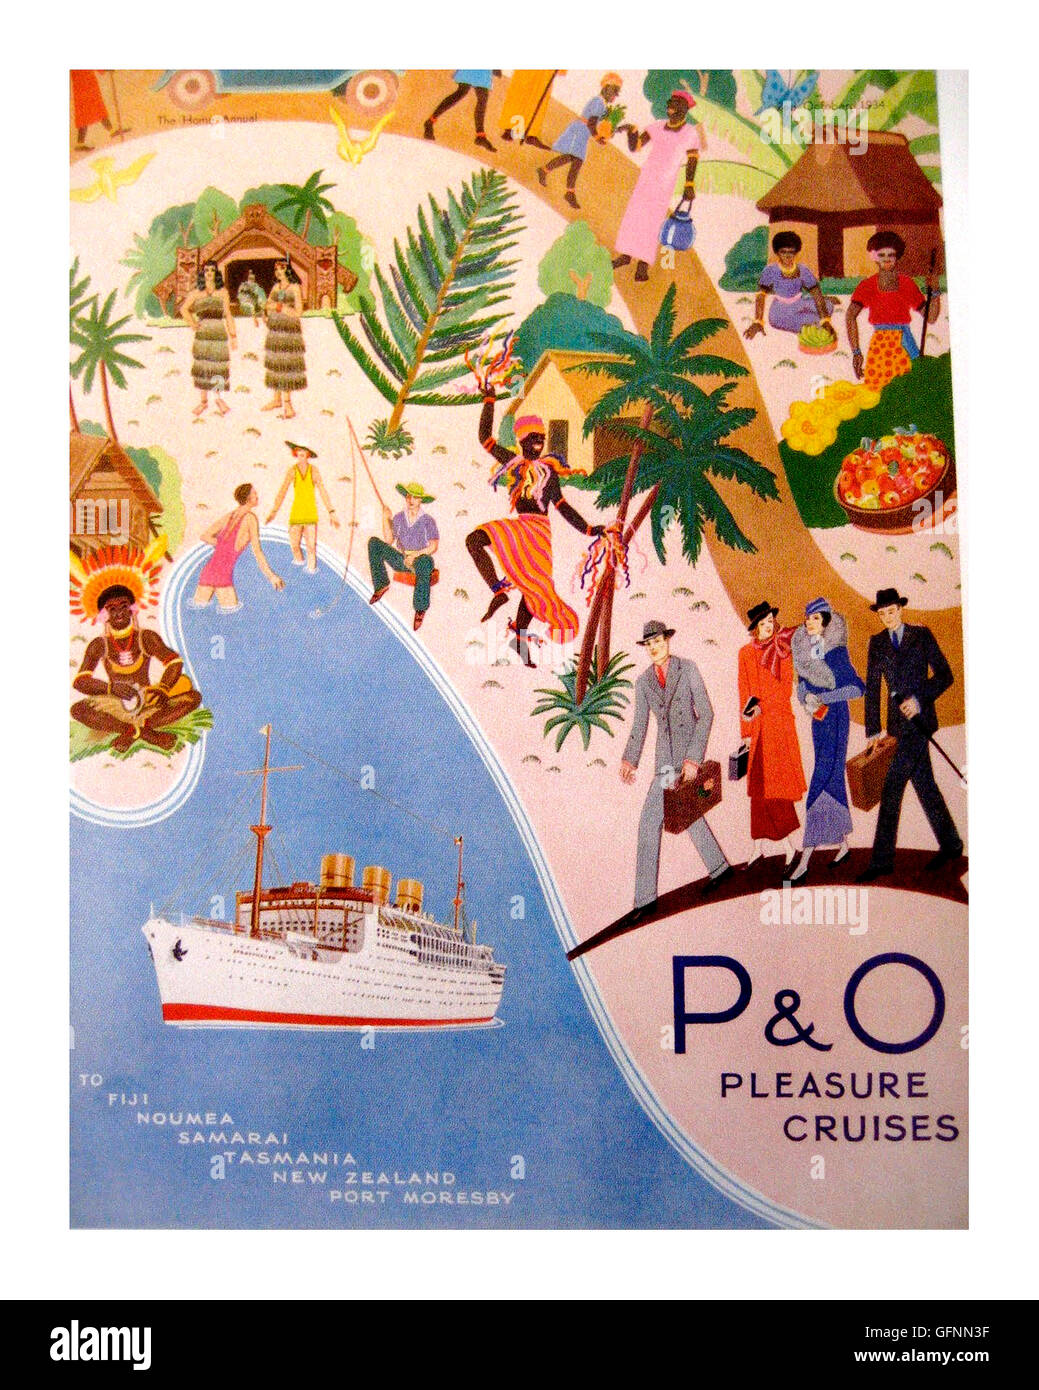 1930s P&O vintage cruise ship poster advertising voyages to the exotic South Pacific.  The rich and famous enjoyed - Stock Image